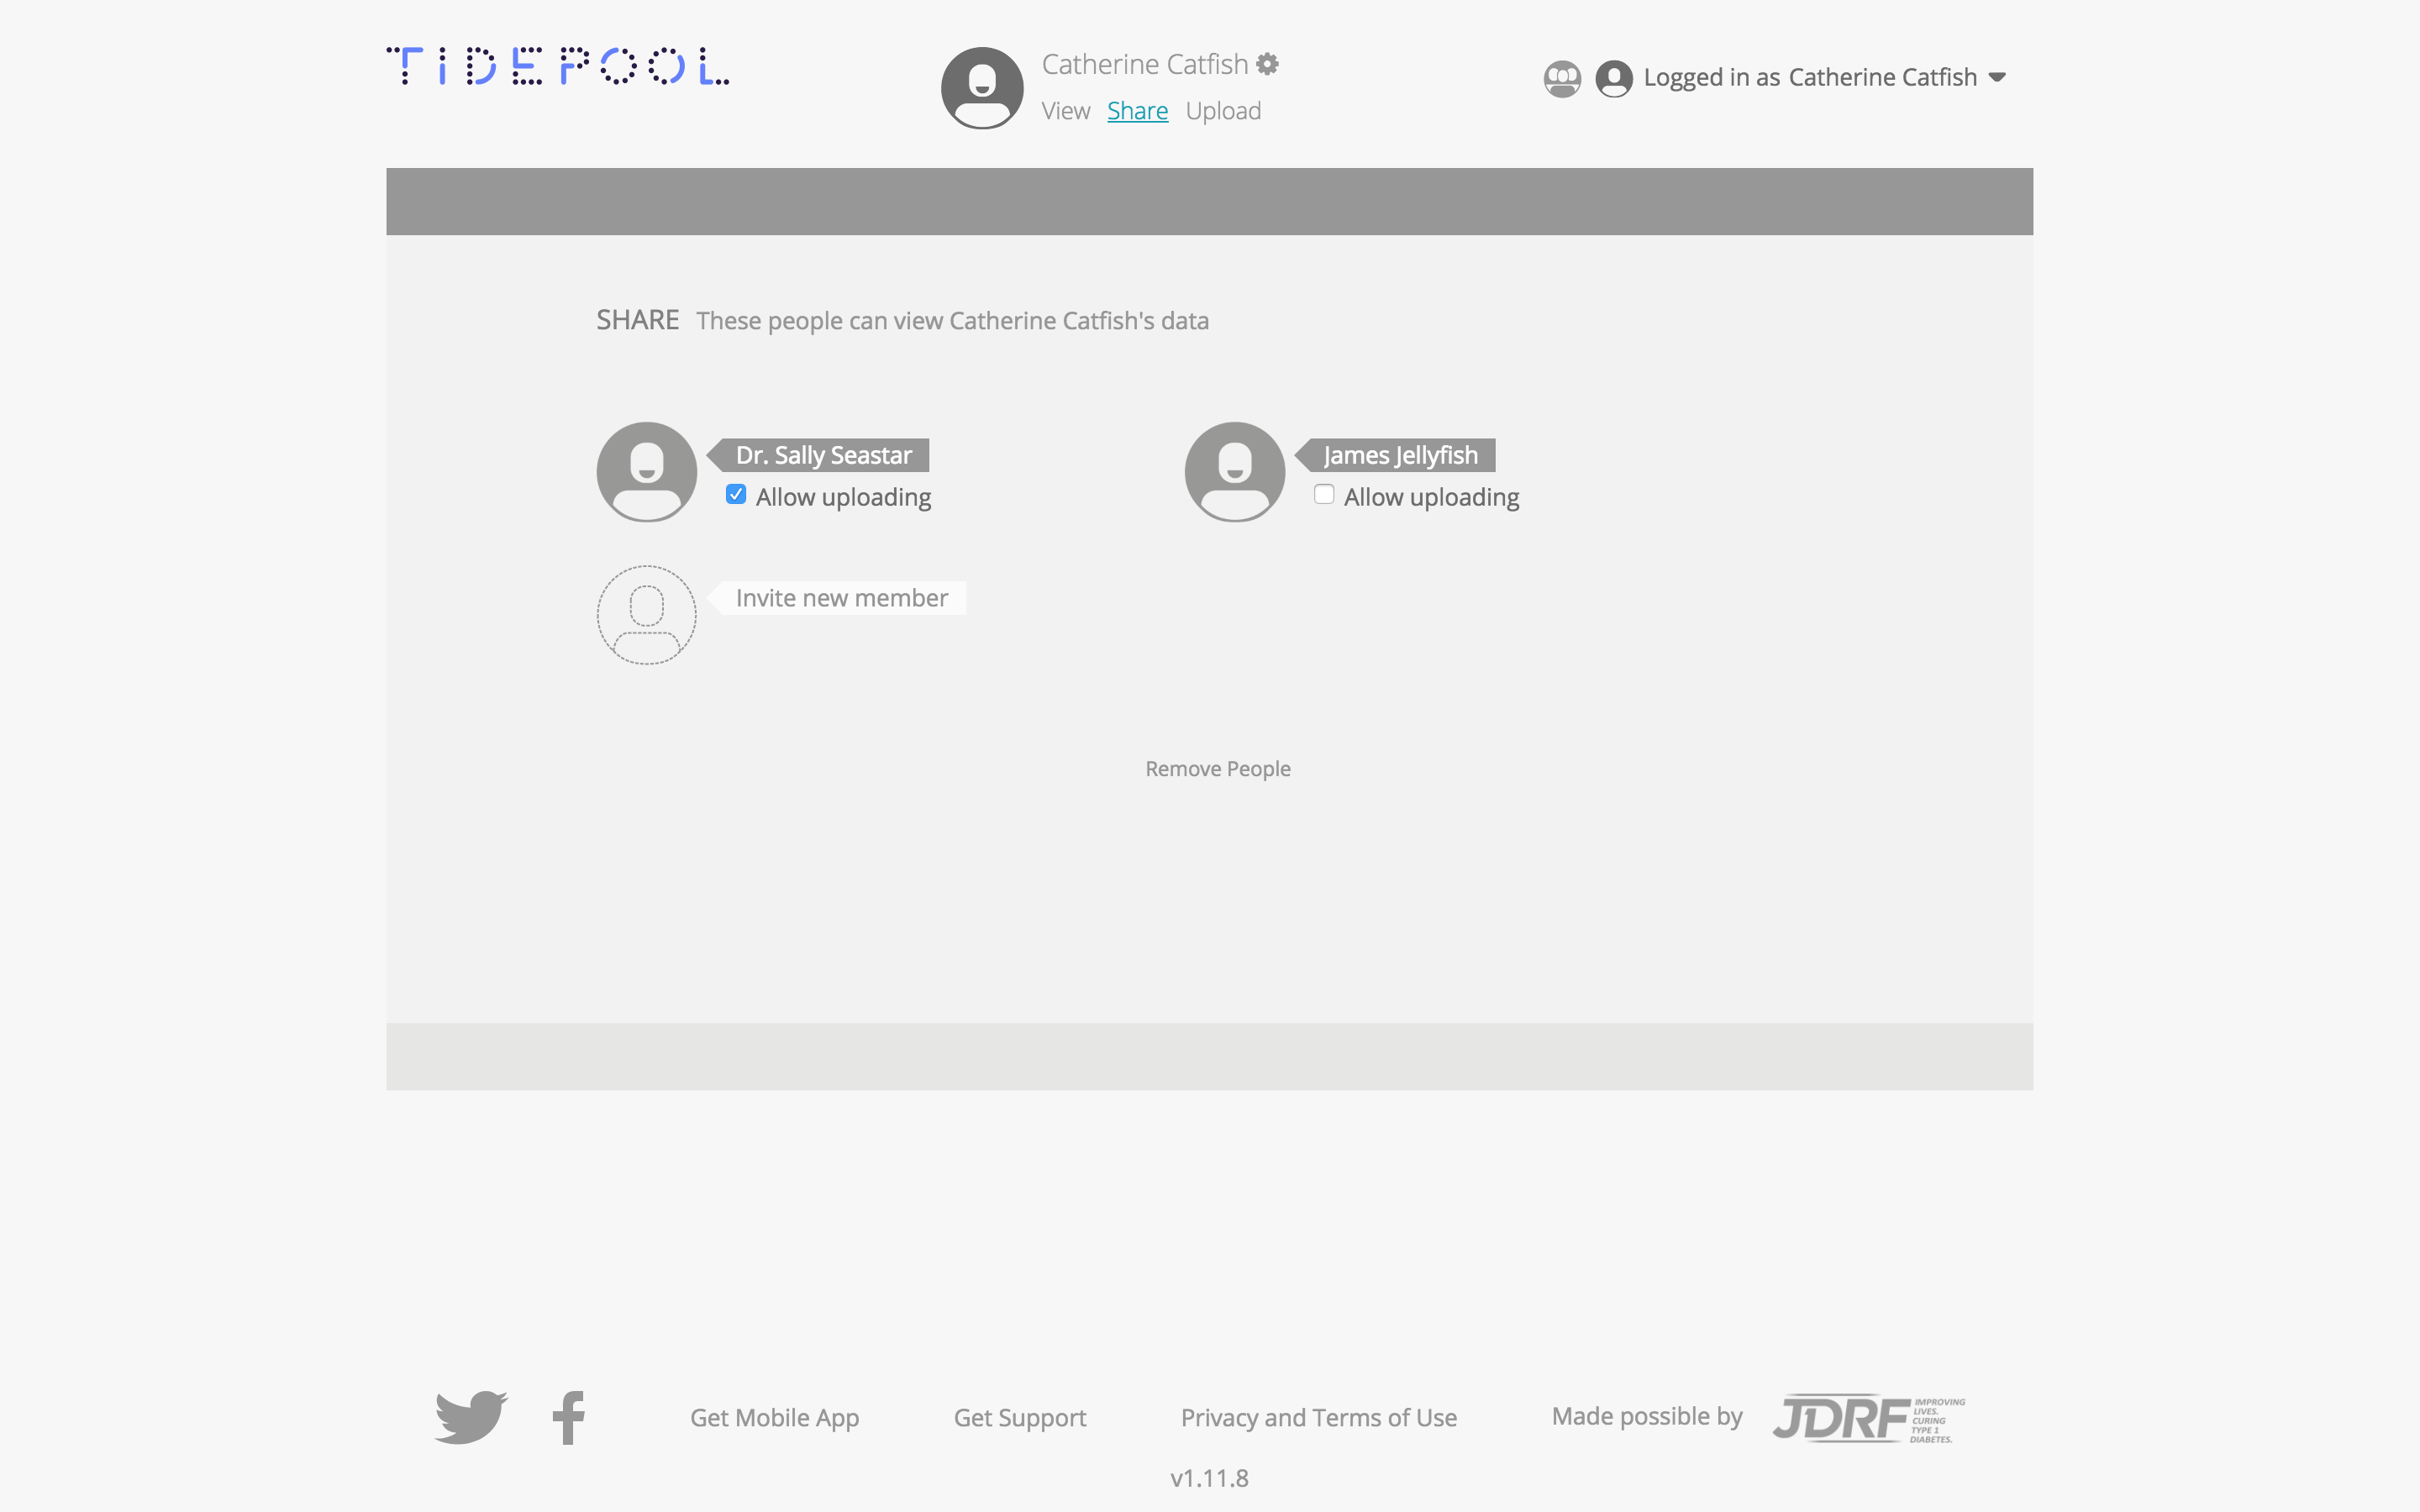 Image of Share page in Tidepool Web